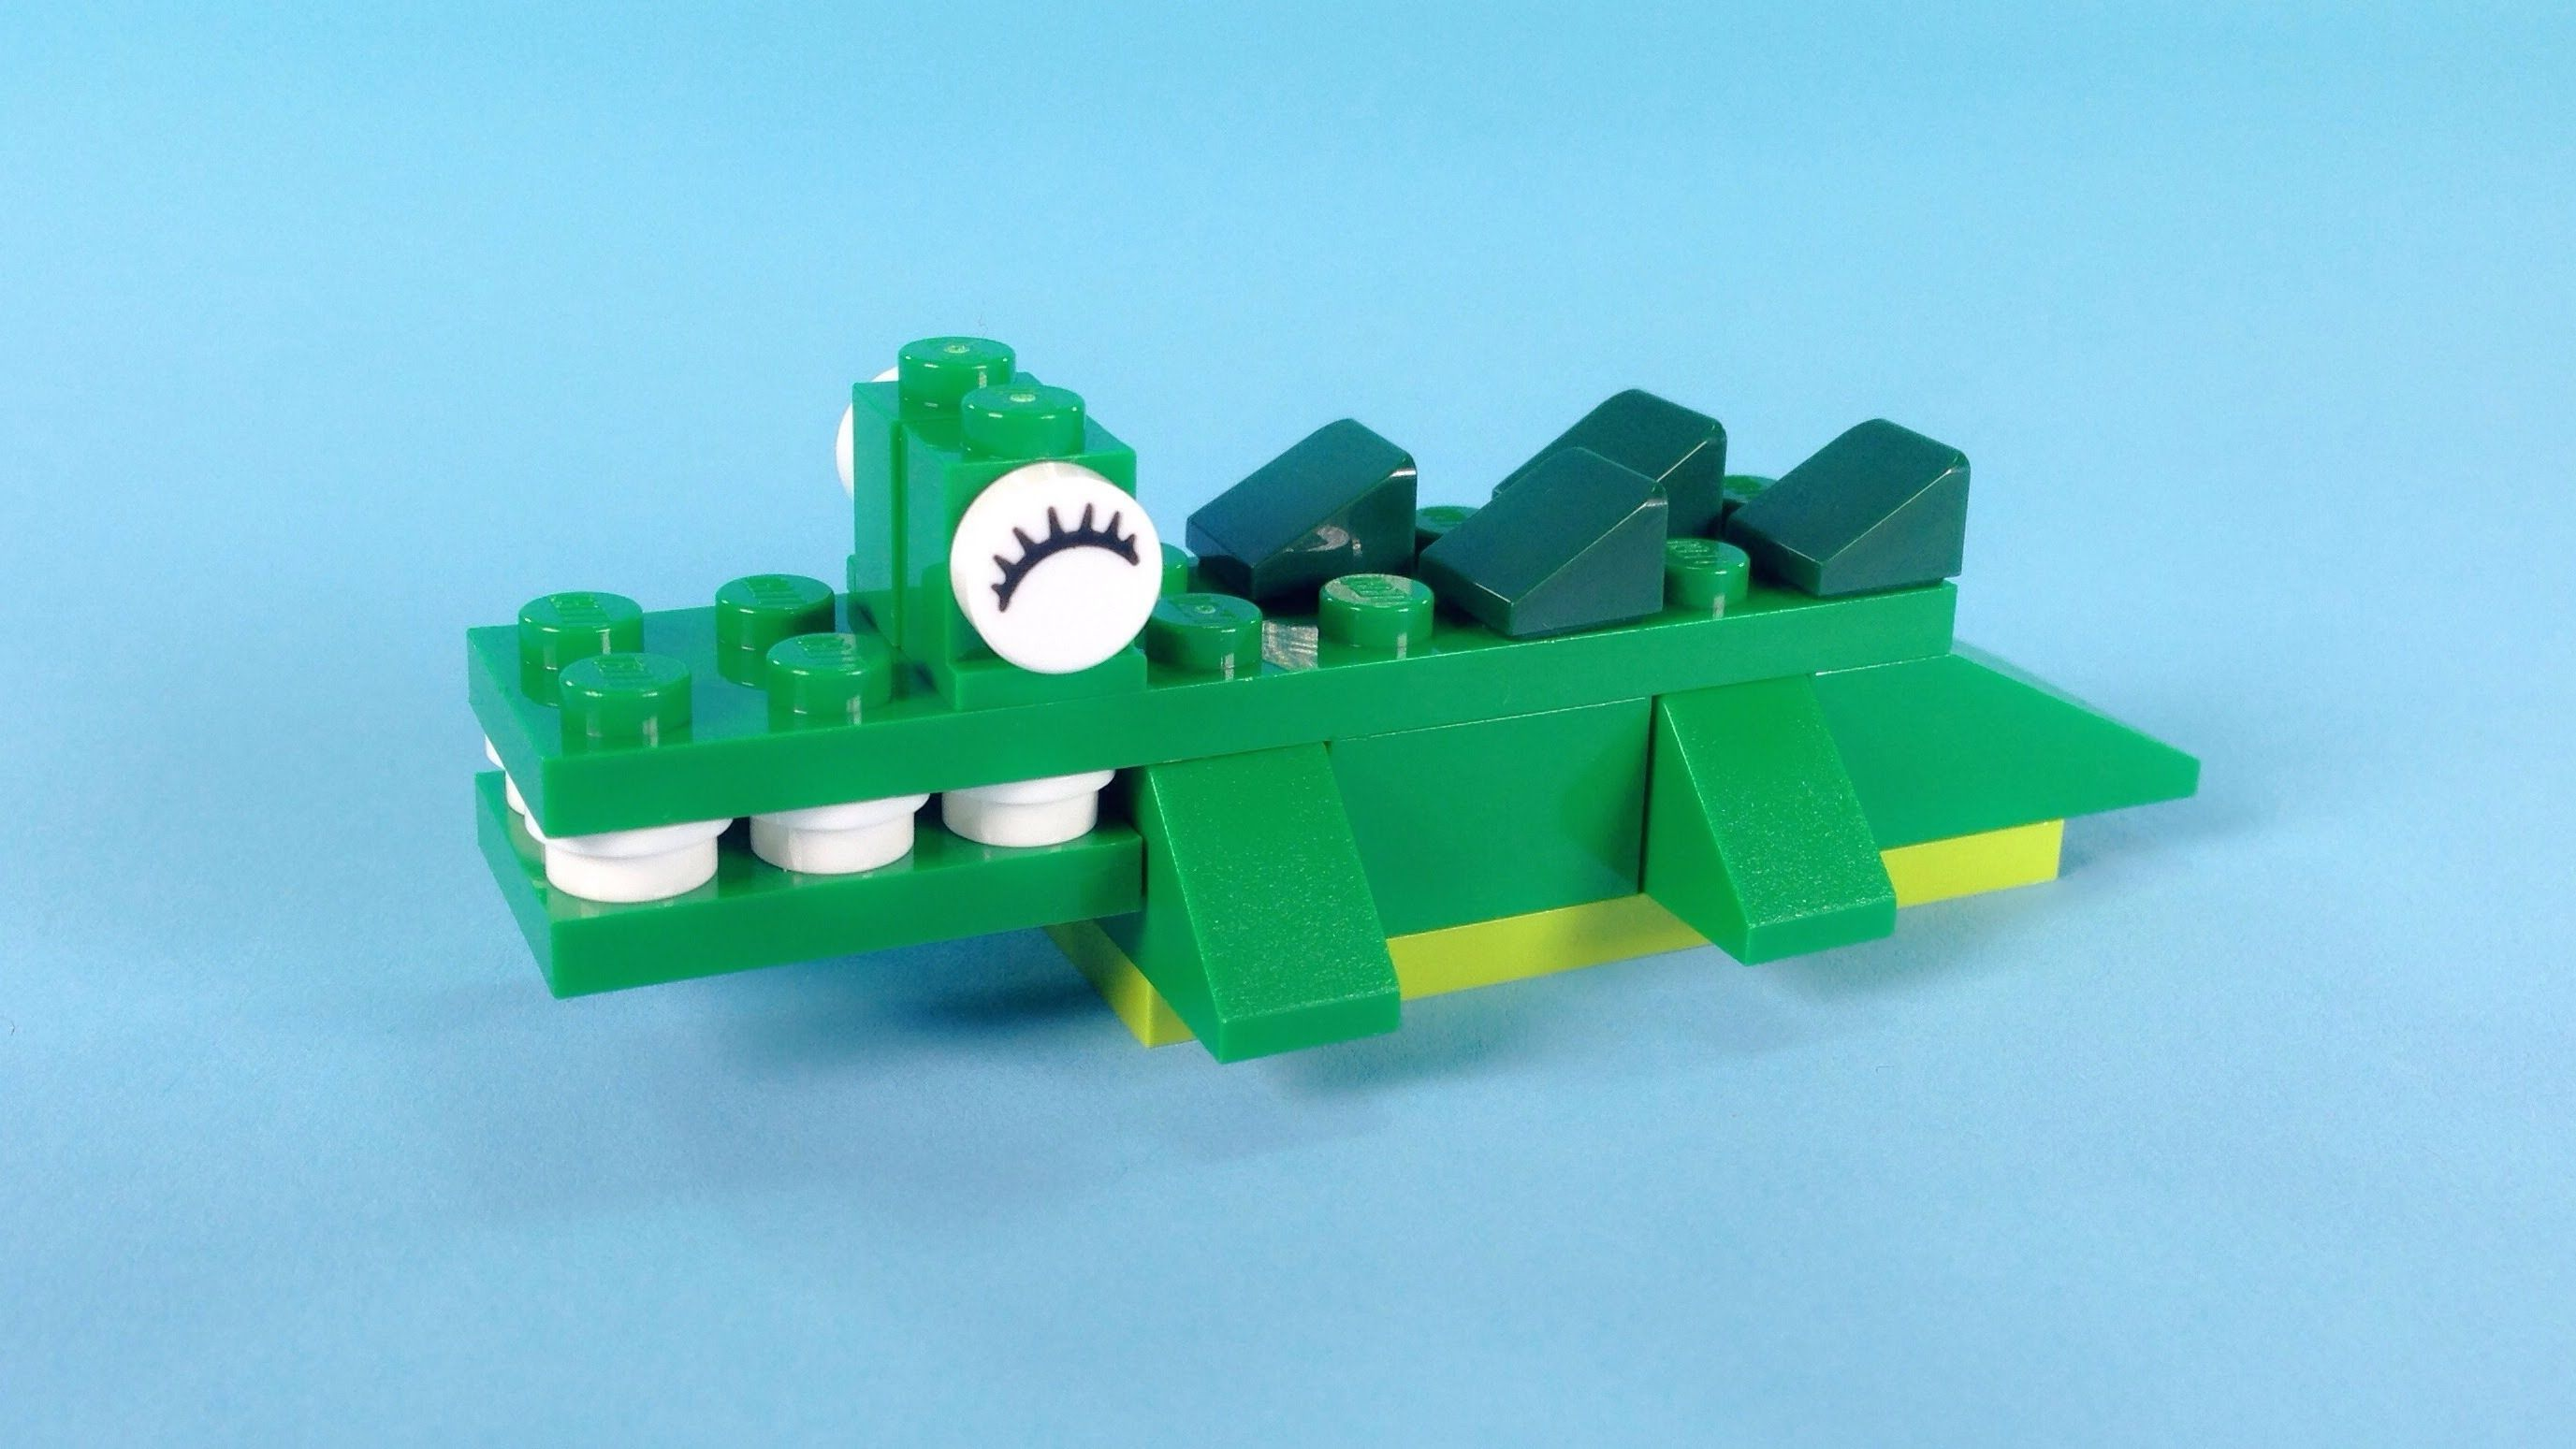 Lego Crocodile Building Steps   Lego Classic 10696  How To    Lego     Lego Crocodile Building Steps   Lego Classic 10696  How To